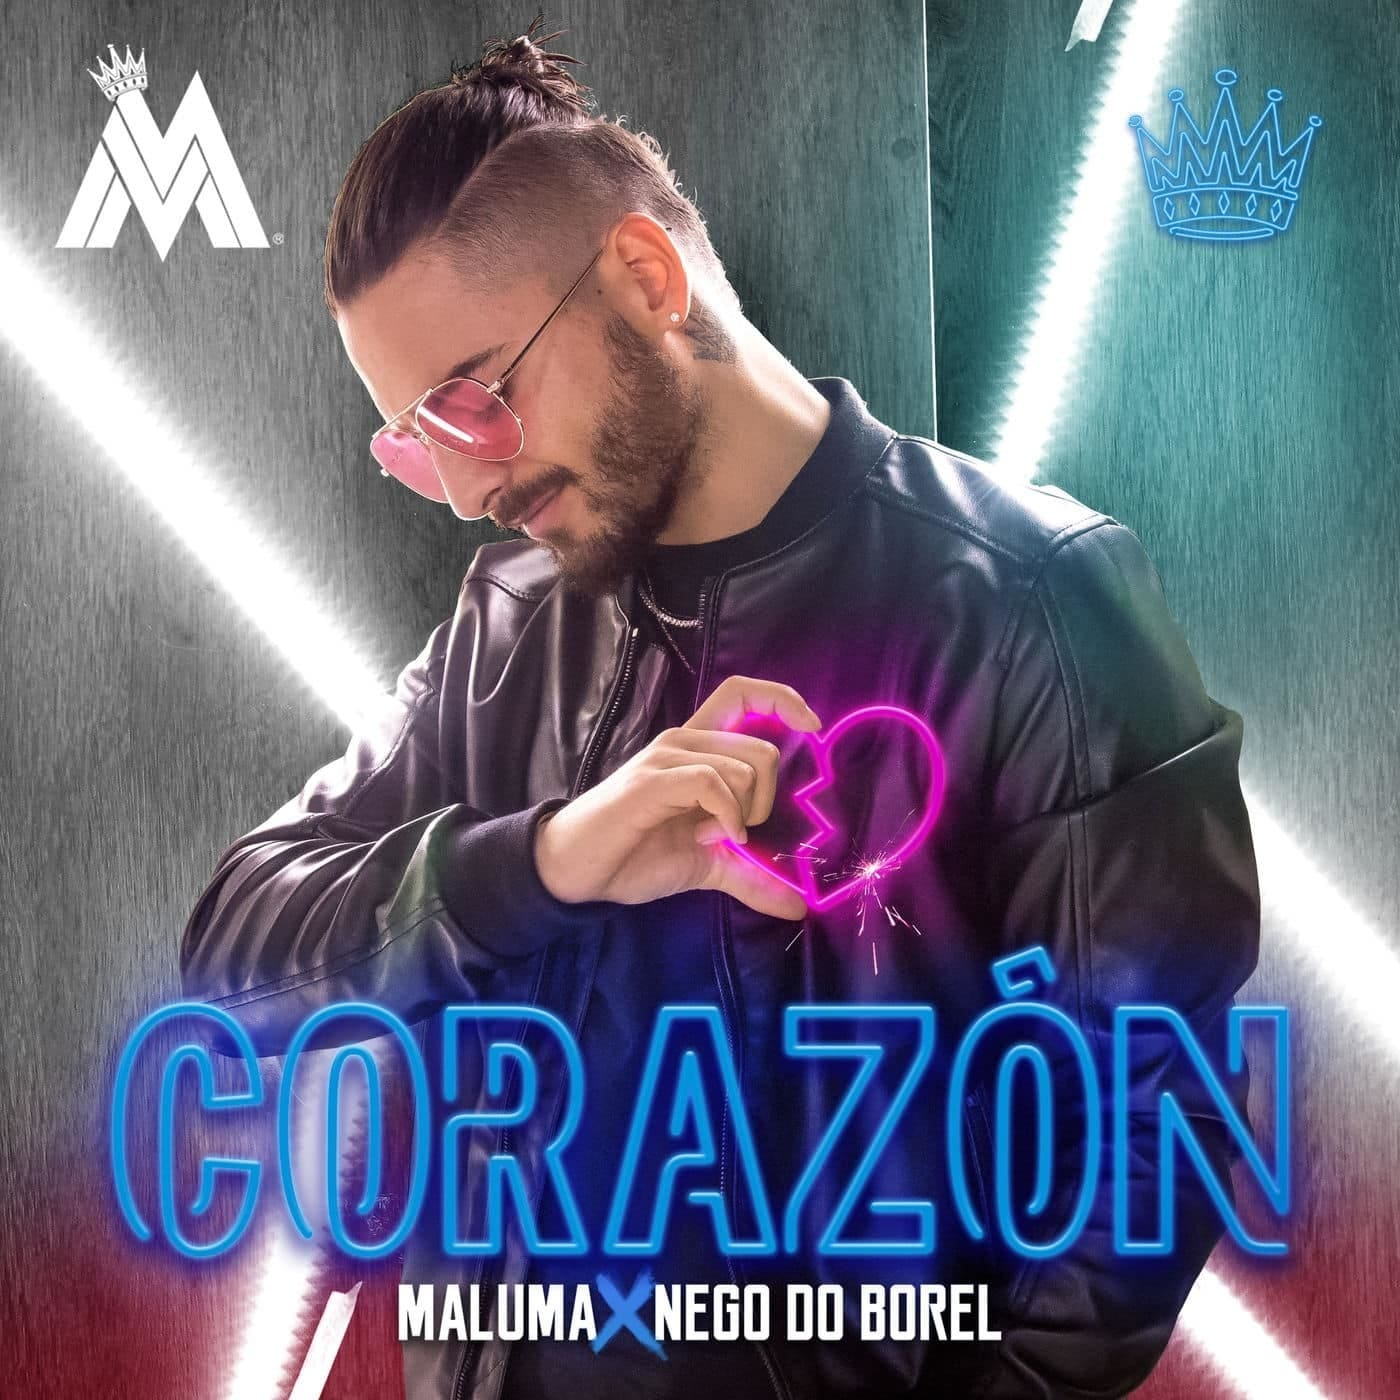 2. Corazón - Maluma ft. Nego do Borel